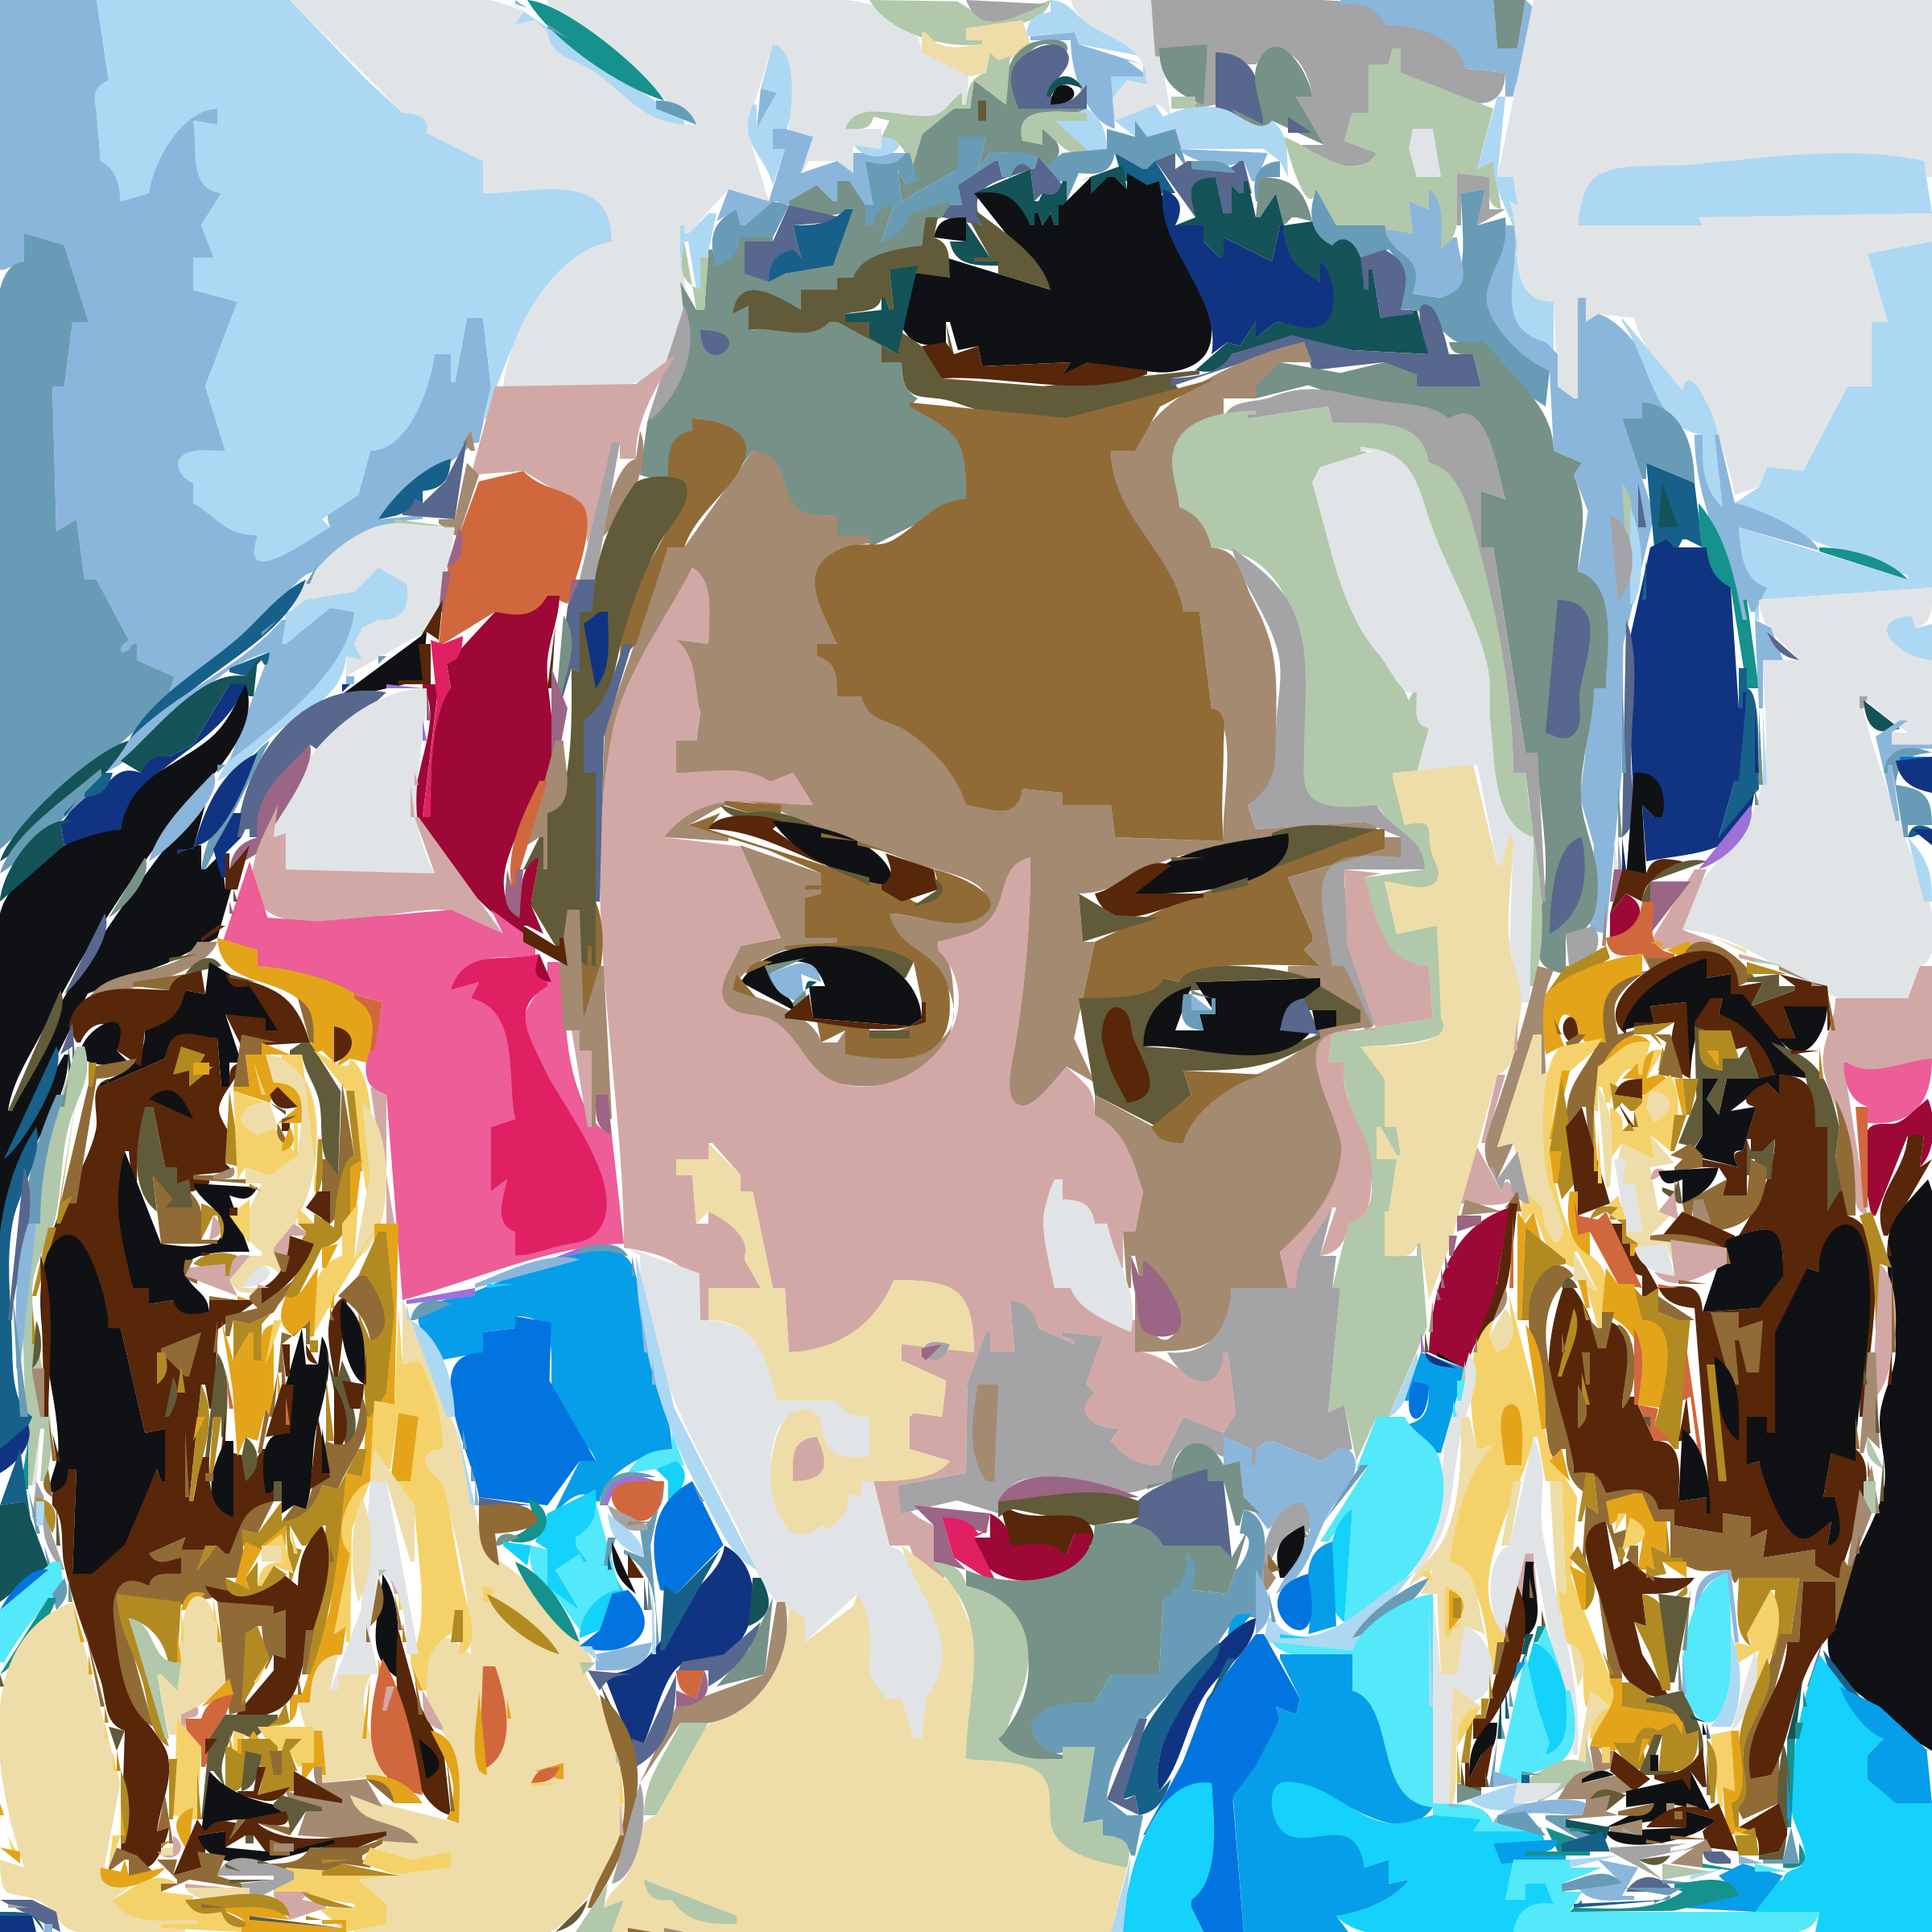 Lady with lions by sureepon_kawinyodying